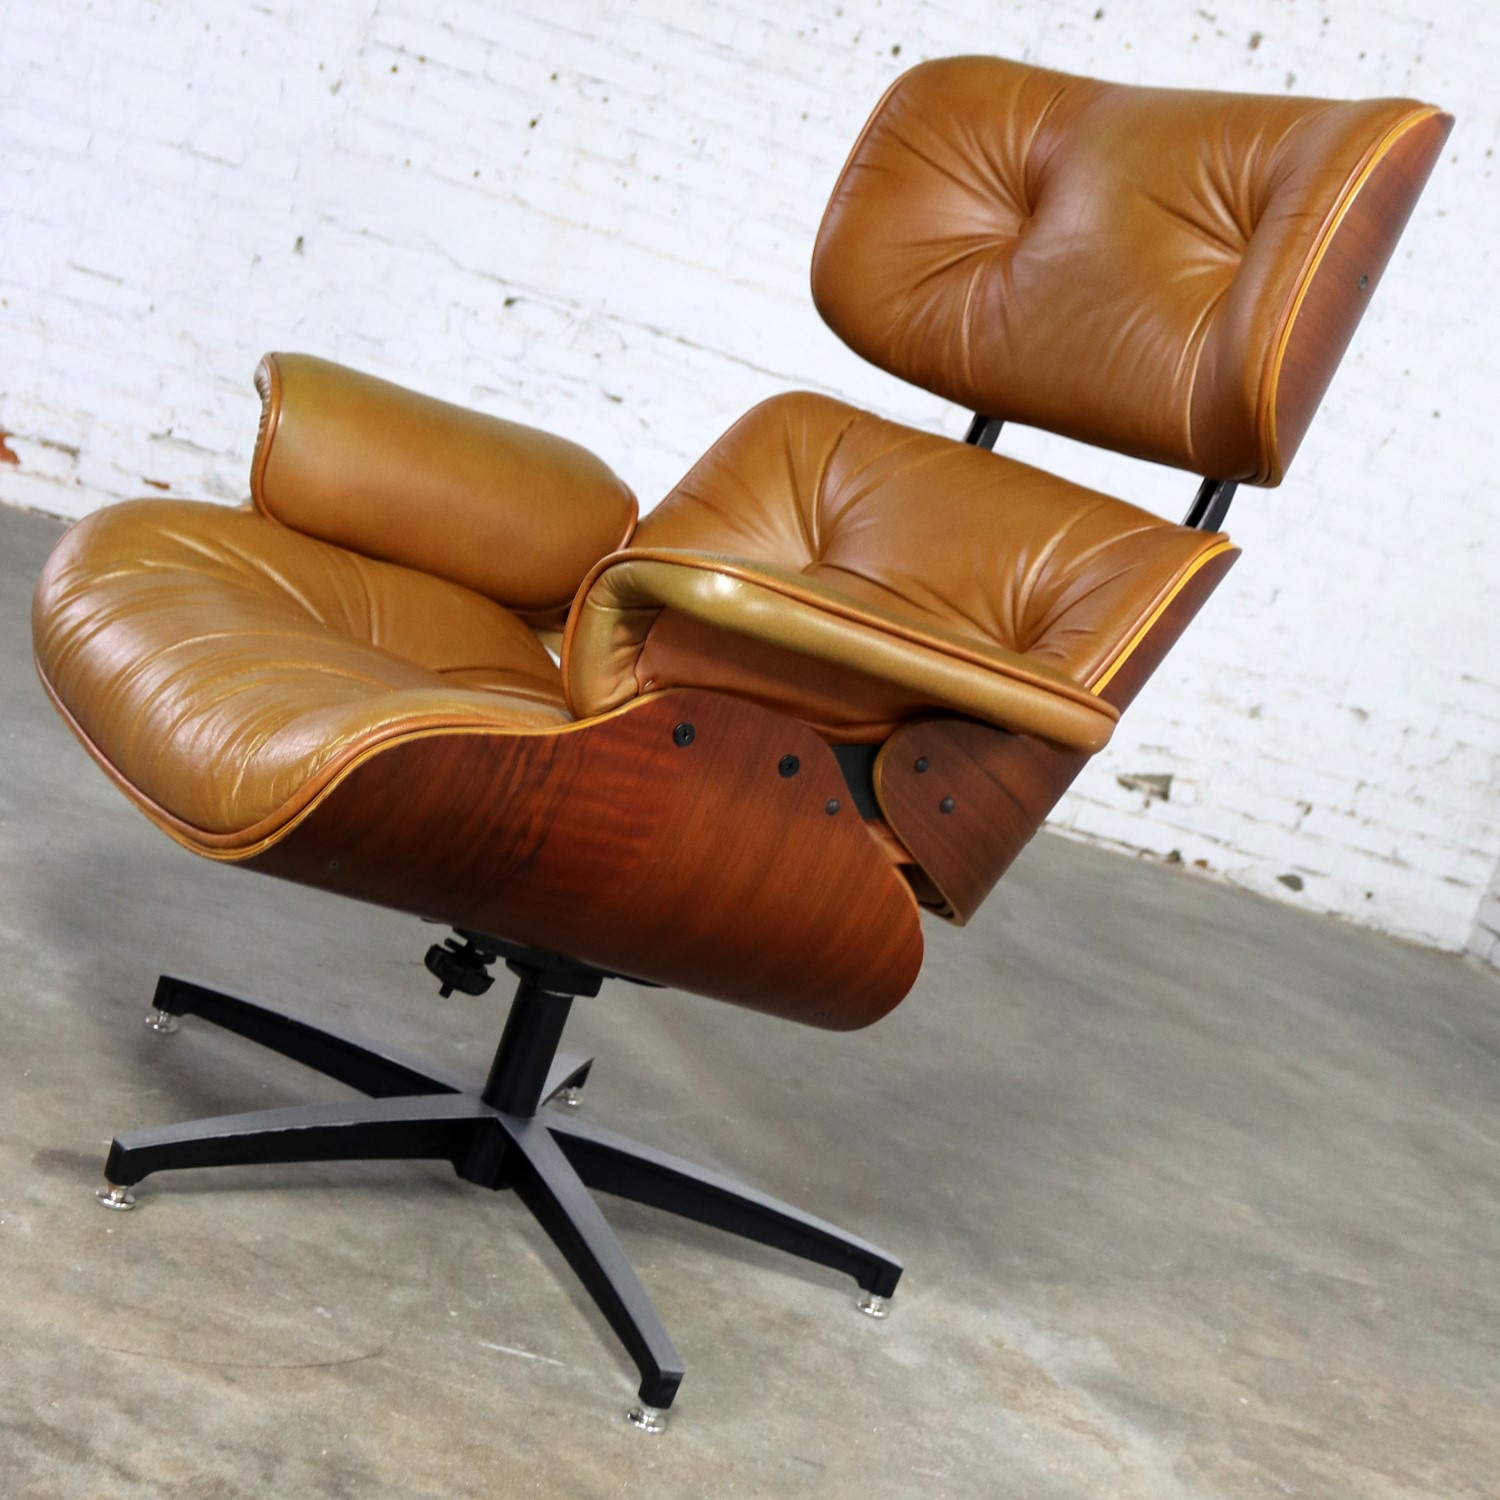 Genial Mid Century Modern Lounge Chair Attributed To Selig Plycraft And In The  Style Of Eames